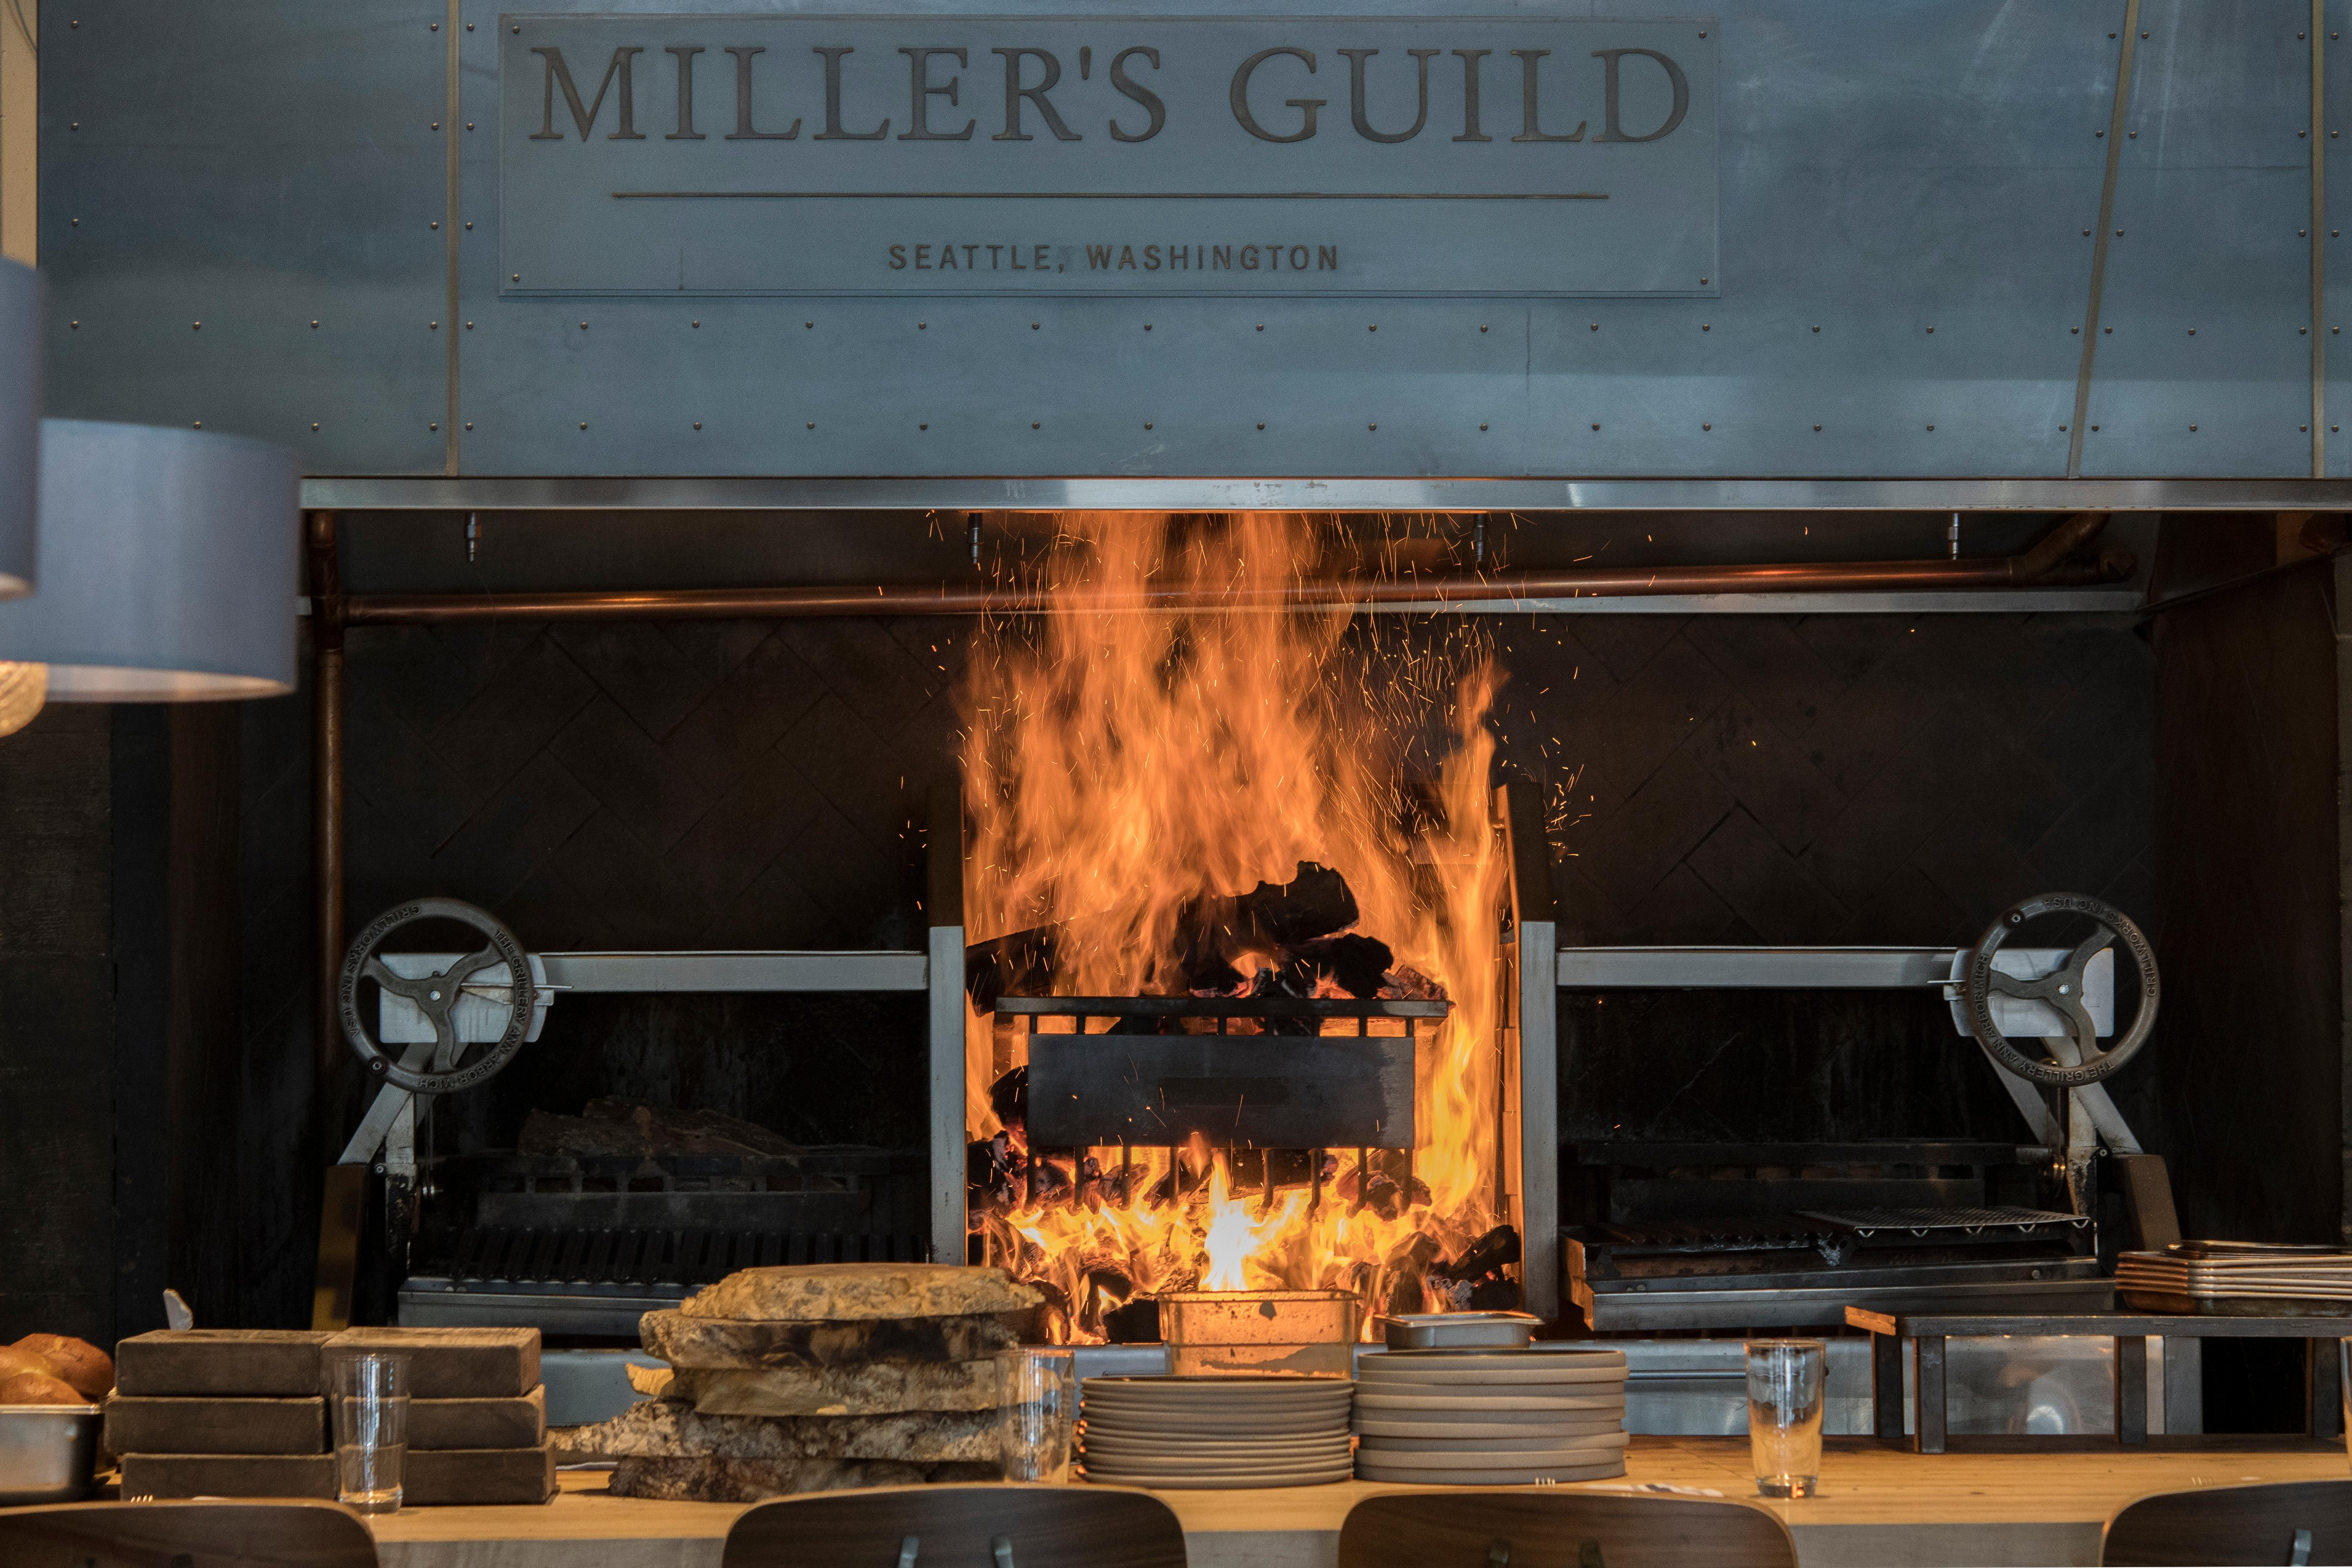 The 'Inferno' at Miller's Guild. Word off the street when they opened is that the grill station was so hot, the cooks aprons melted and they needed to switch to something less dangerous. (Image: Fire & Vine Hospitality)